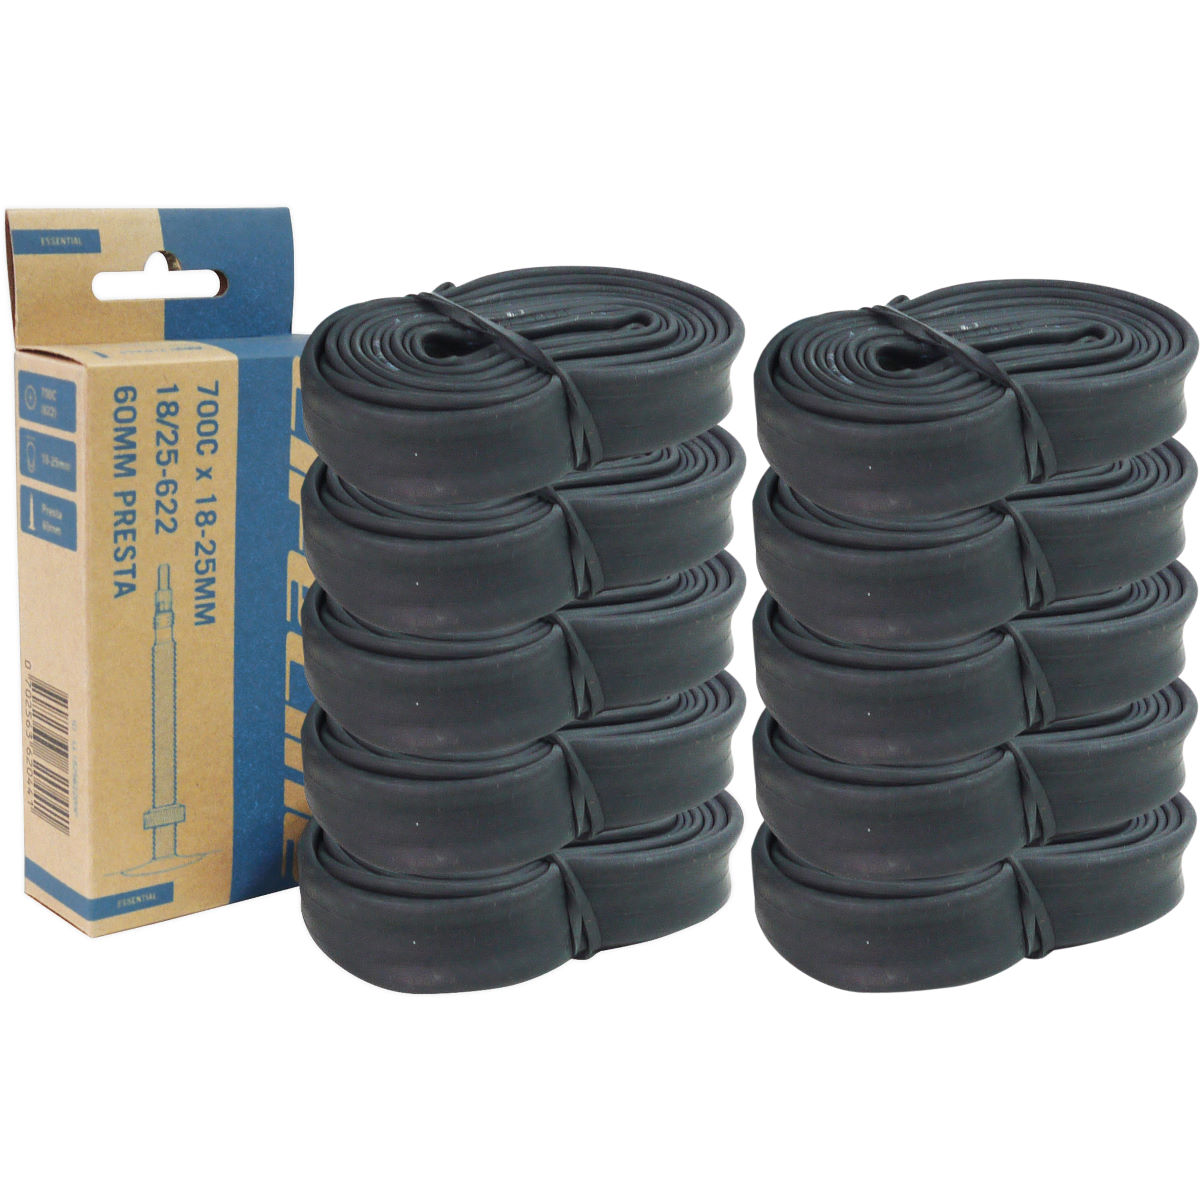 LifeLine Road 10 Pack of Inner Tubes